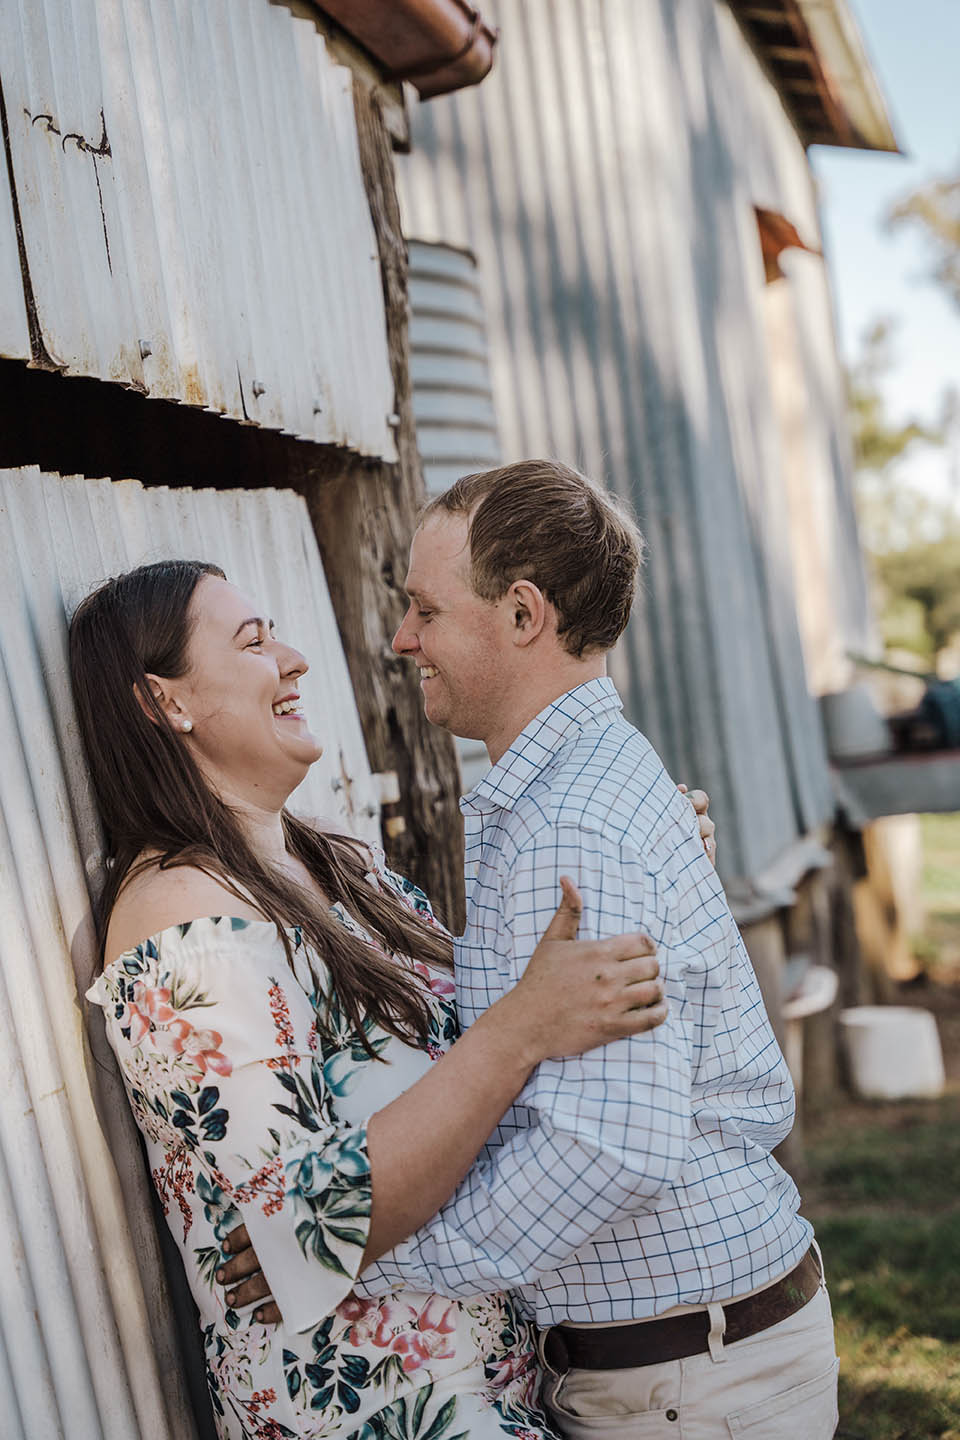 Engagement Photography - Couple leaning on shed